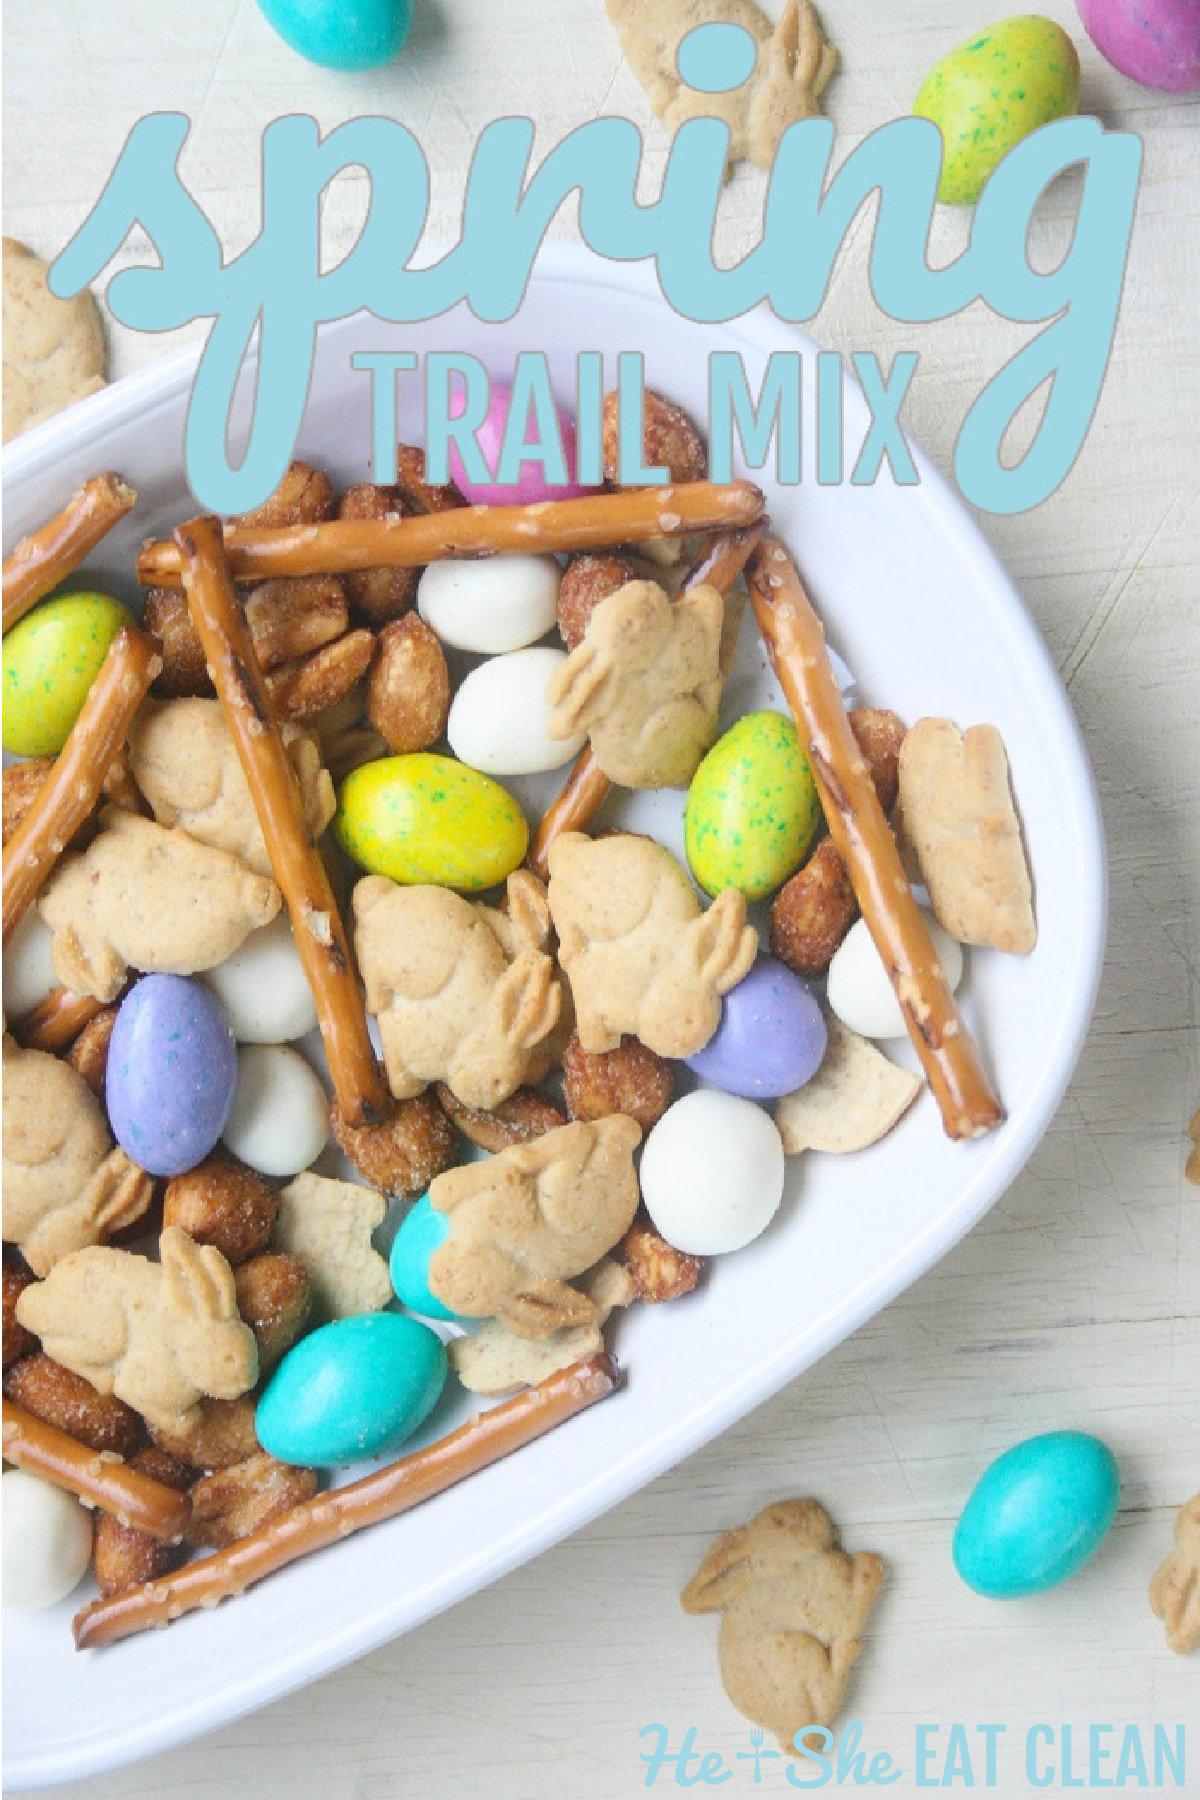 white bowl filled with Spring Trail Mix of chocolate candy, pretzels, yogurt raisins, and bunny crackers